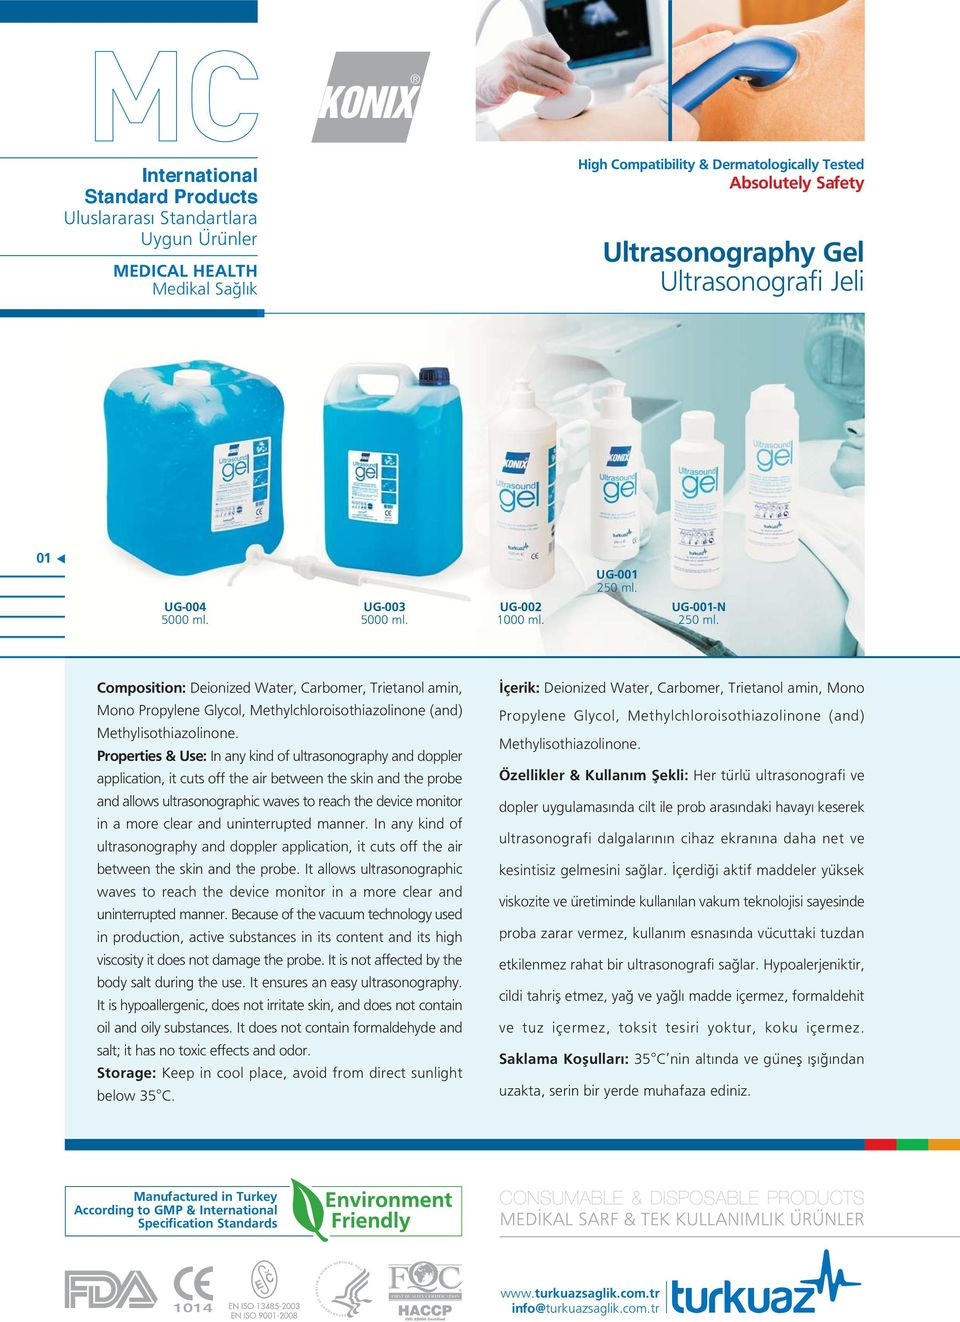 Properties & Use: In any kind of ultrasonography and doppler application, it cuts off the air between the skin and the probe and allows ultrasonographic waves to reach the device monitor in a more